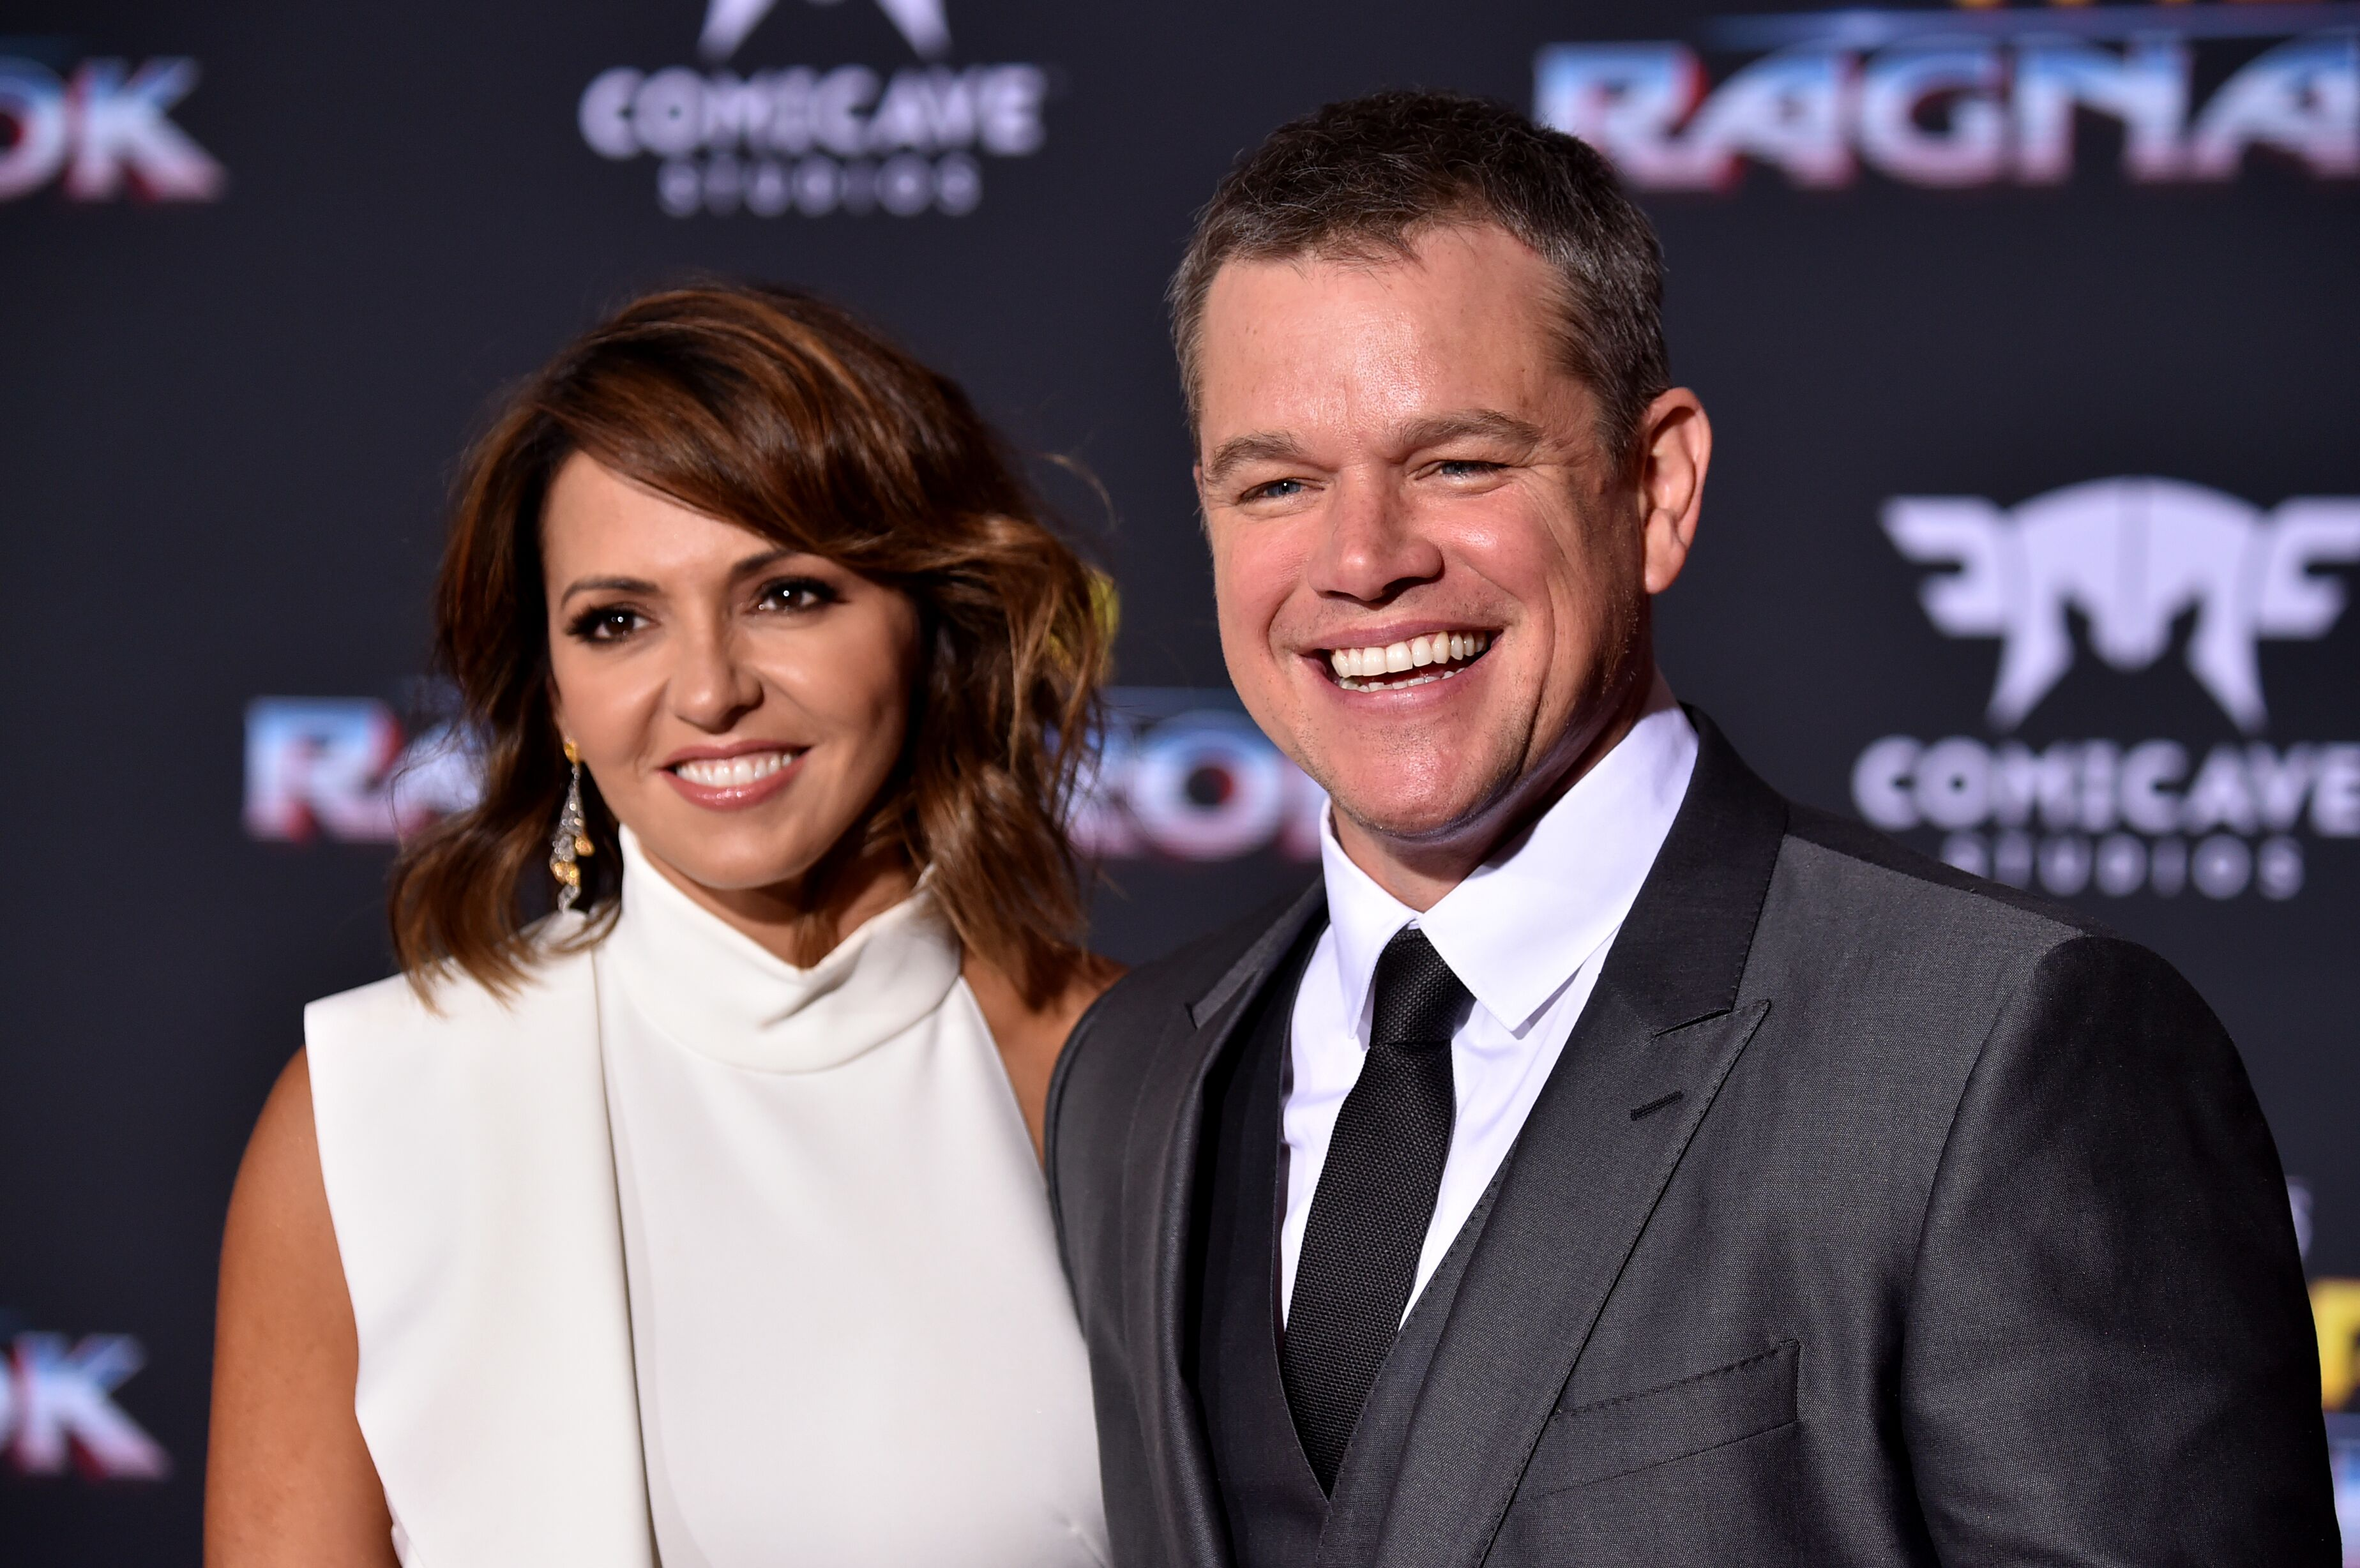 Matt Damon and Luciana Barroso at the El Capitan Theatre on October 10, 2017 in Los Angeles, California. | Photo: Getty Images